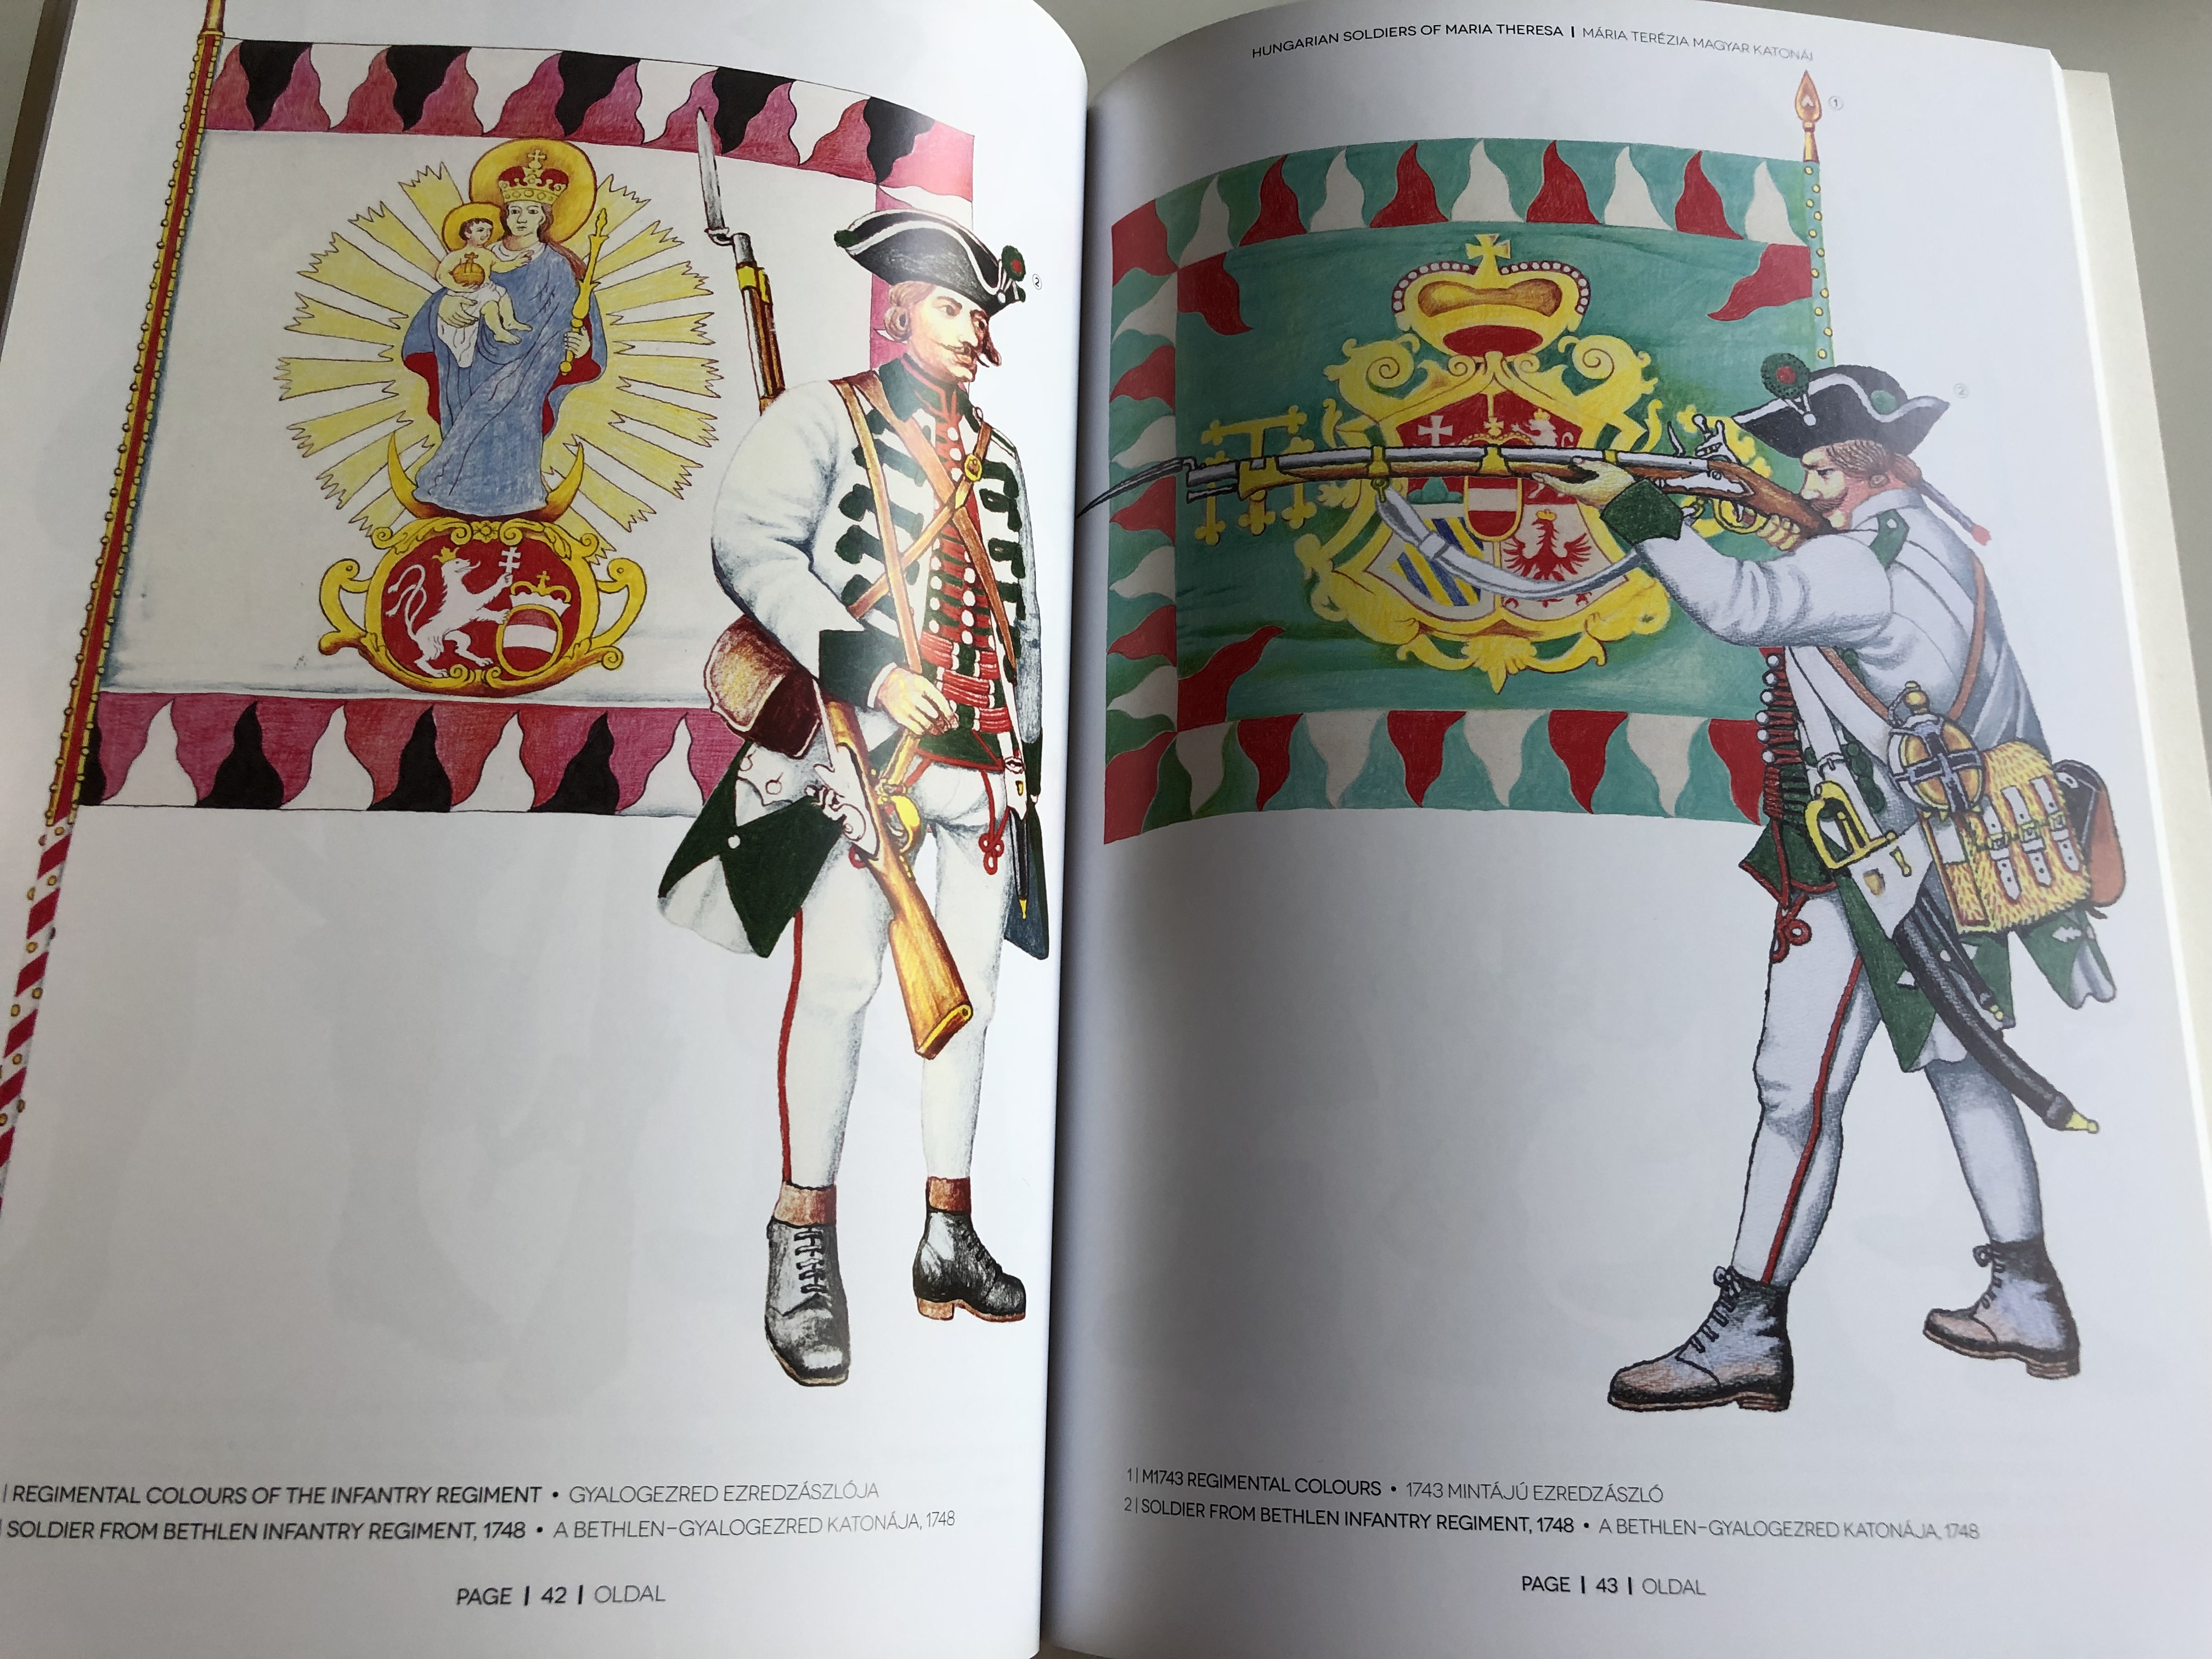 hungarian-soldiers-of-maria-theresa-1740-1768-by-gy-z-somogyi-m-ria-ter-zia-magyar-katon-i-1740-1768-a-millenium-in-the-military-egy-ezred-v-hadban-paperback-2016-hm-zr-nyi-5-.jpg